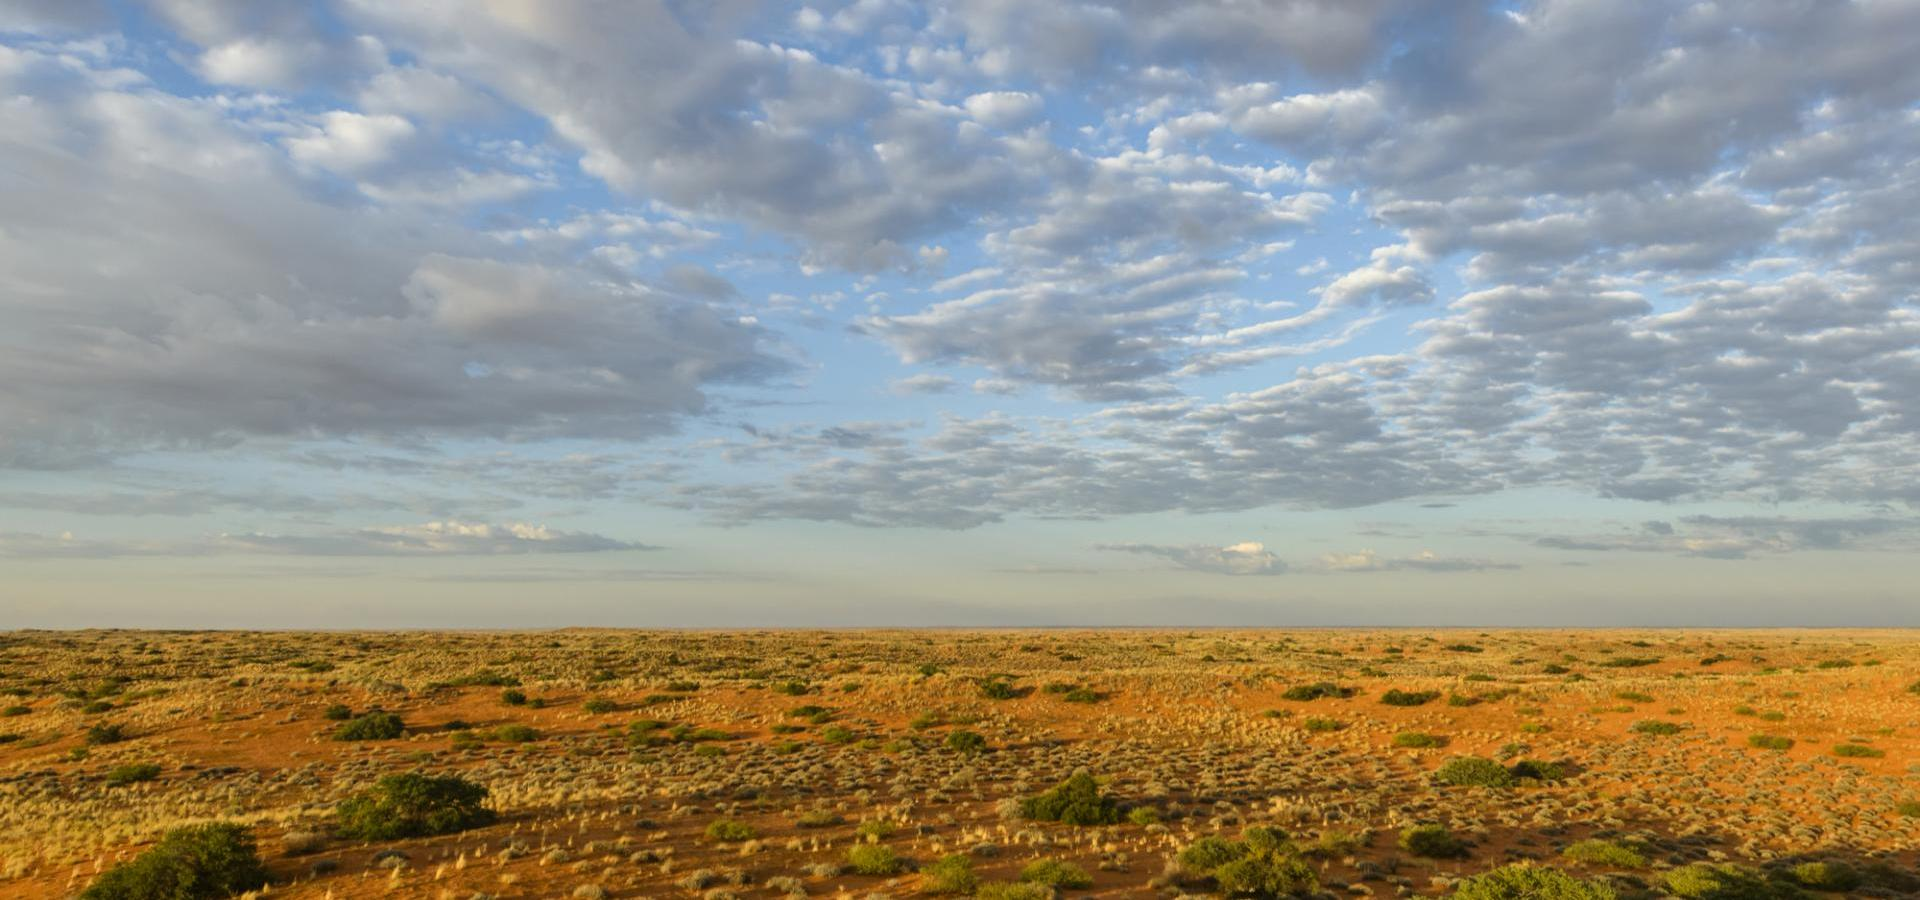 Panorama der Central Kalahari in Botswana